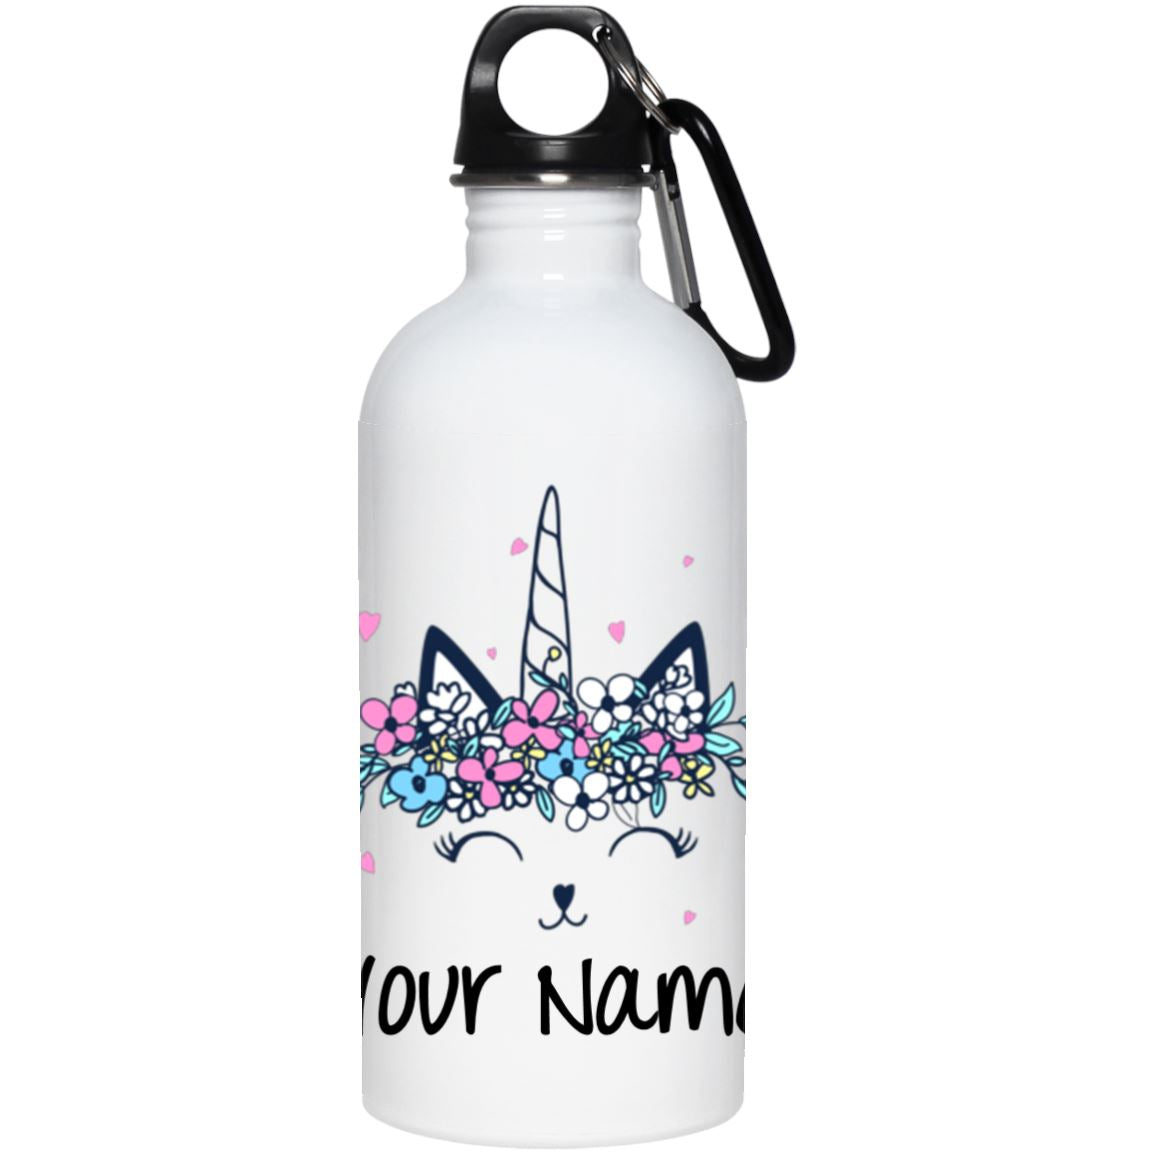 Personalized Kitty Cat Unicorn Stainless Steel Water Bottle Drinkware One Size